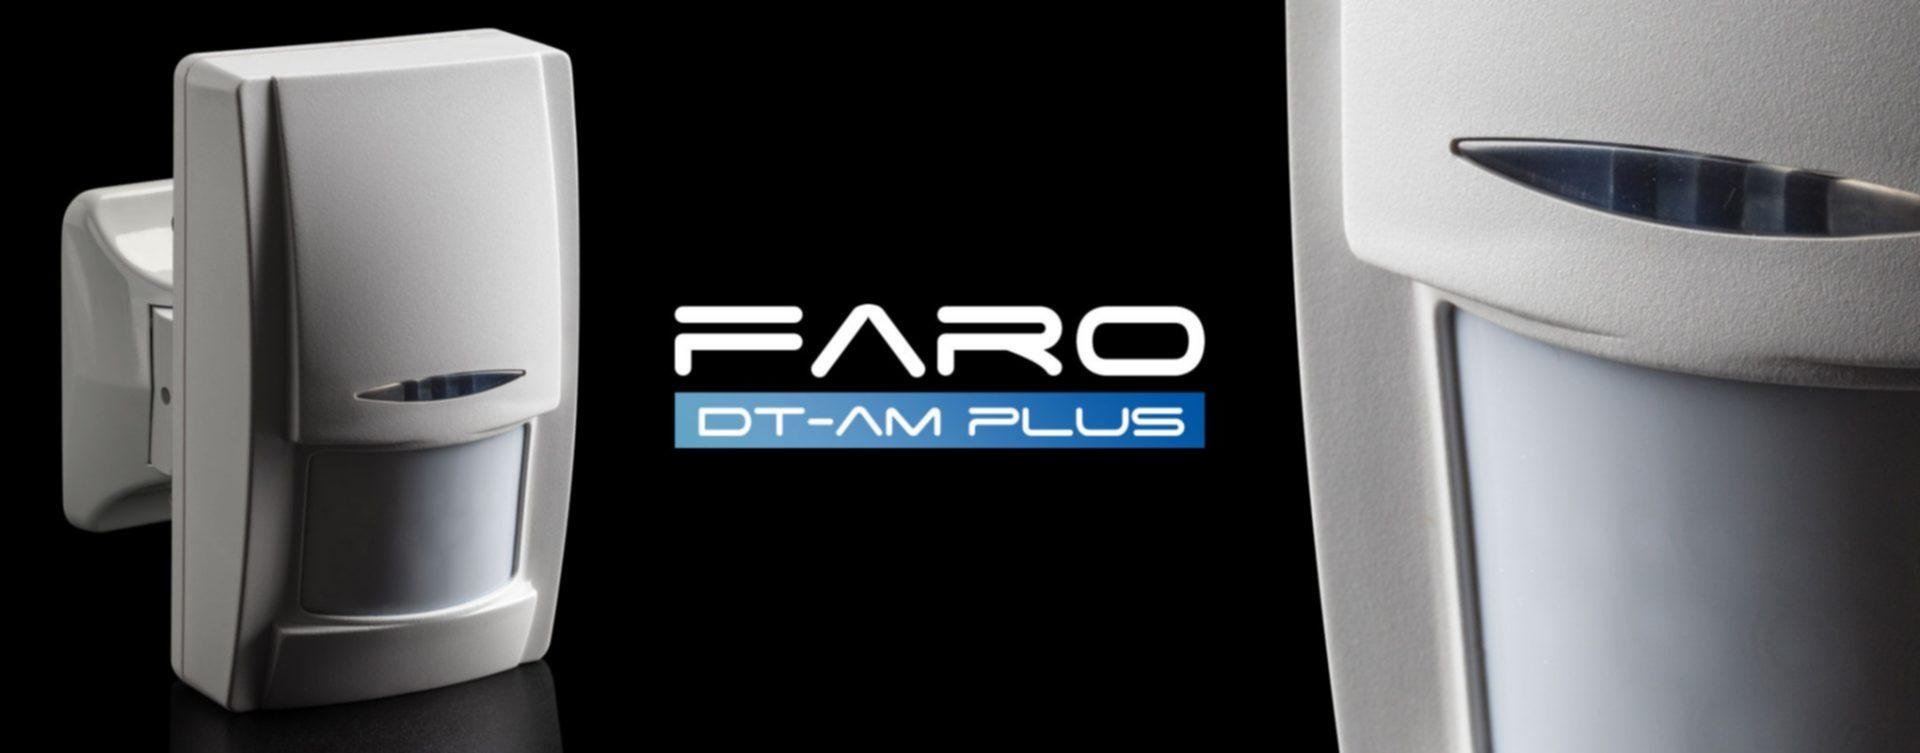 Faro DT-AM Plus